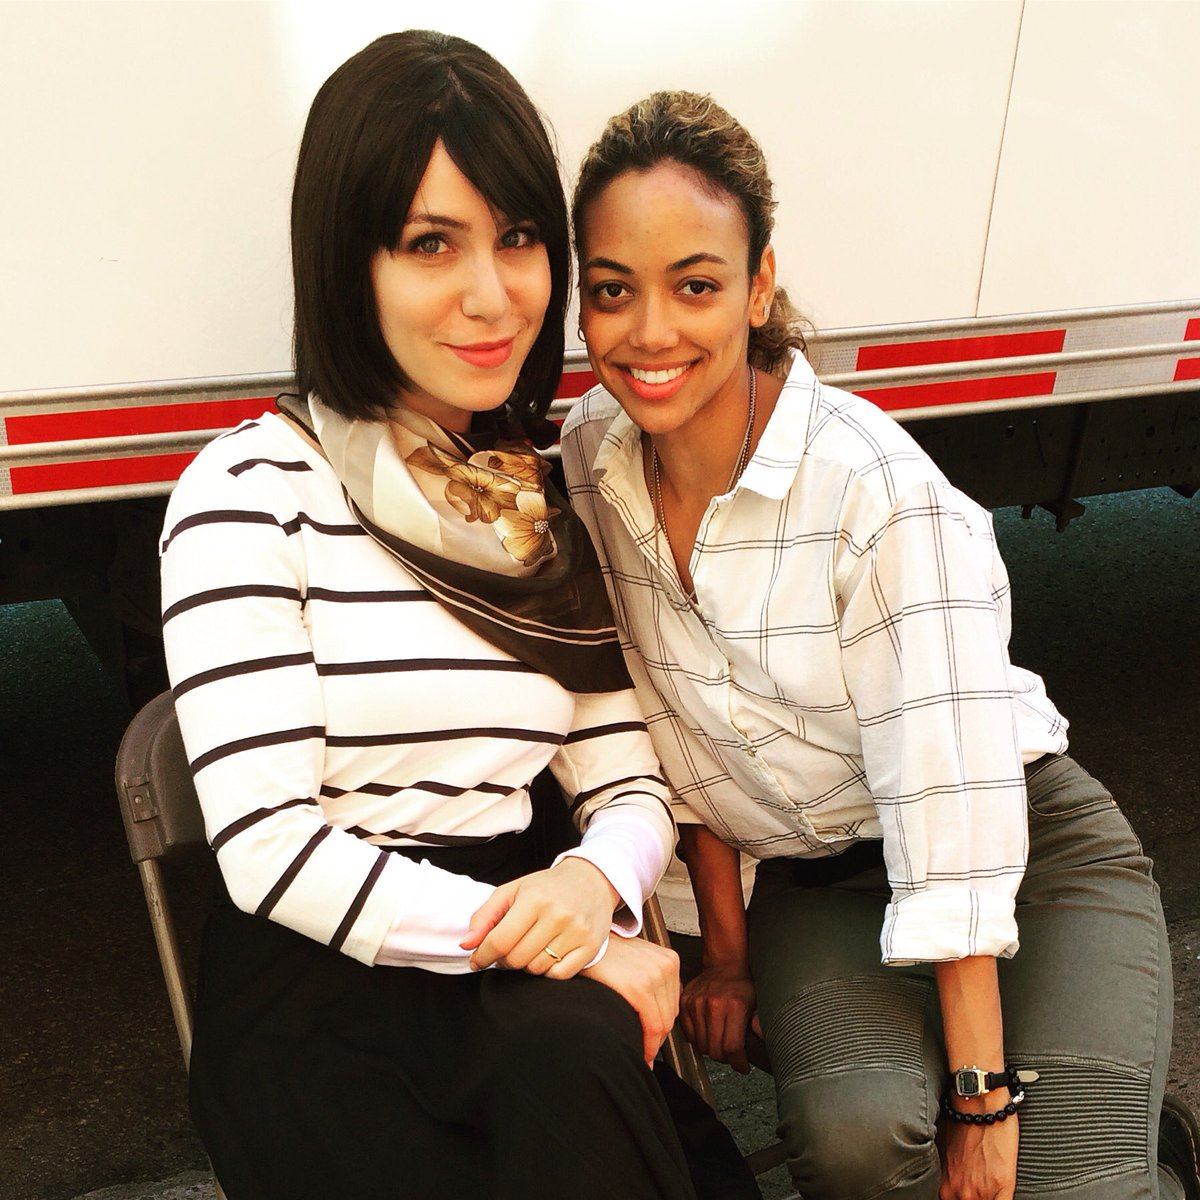 """Amber Goldfarb amber goldfarb on twitter: """"day 1 on set with this beauty"""